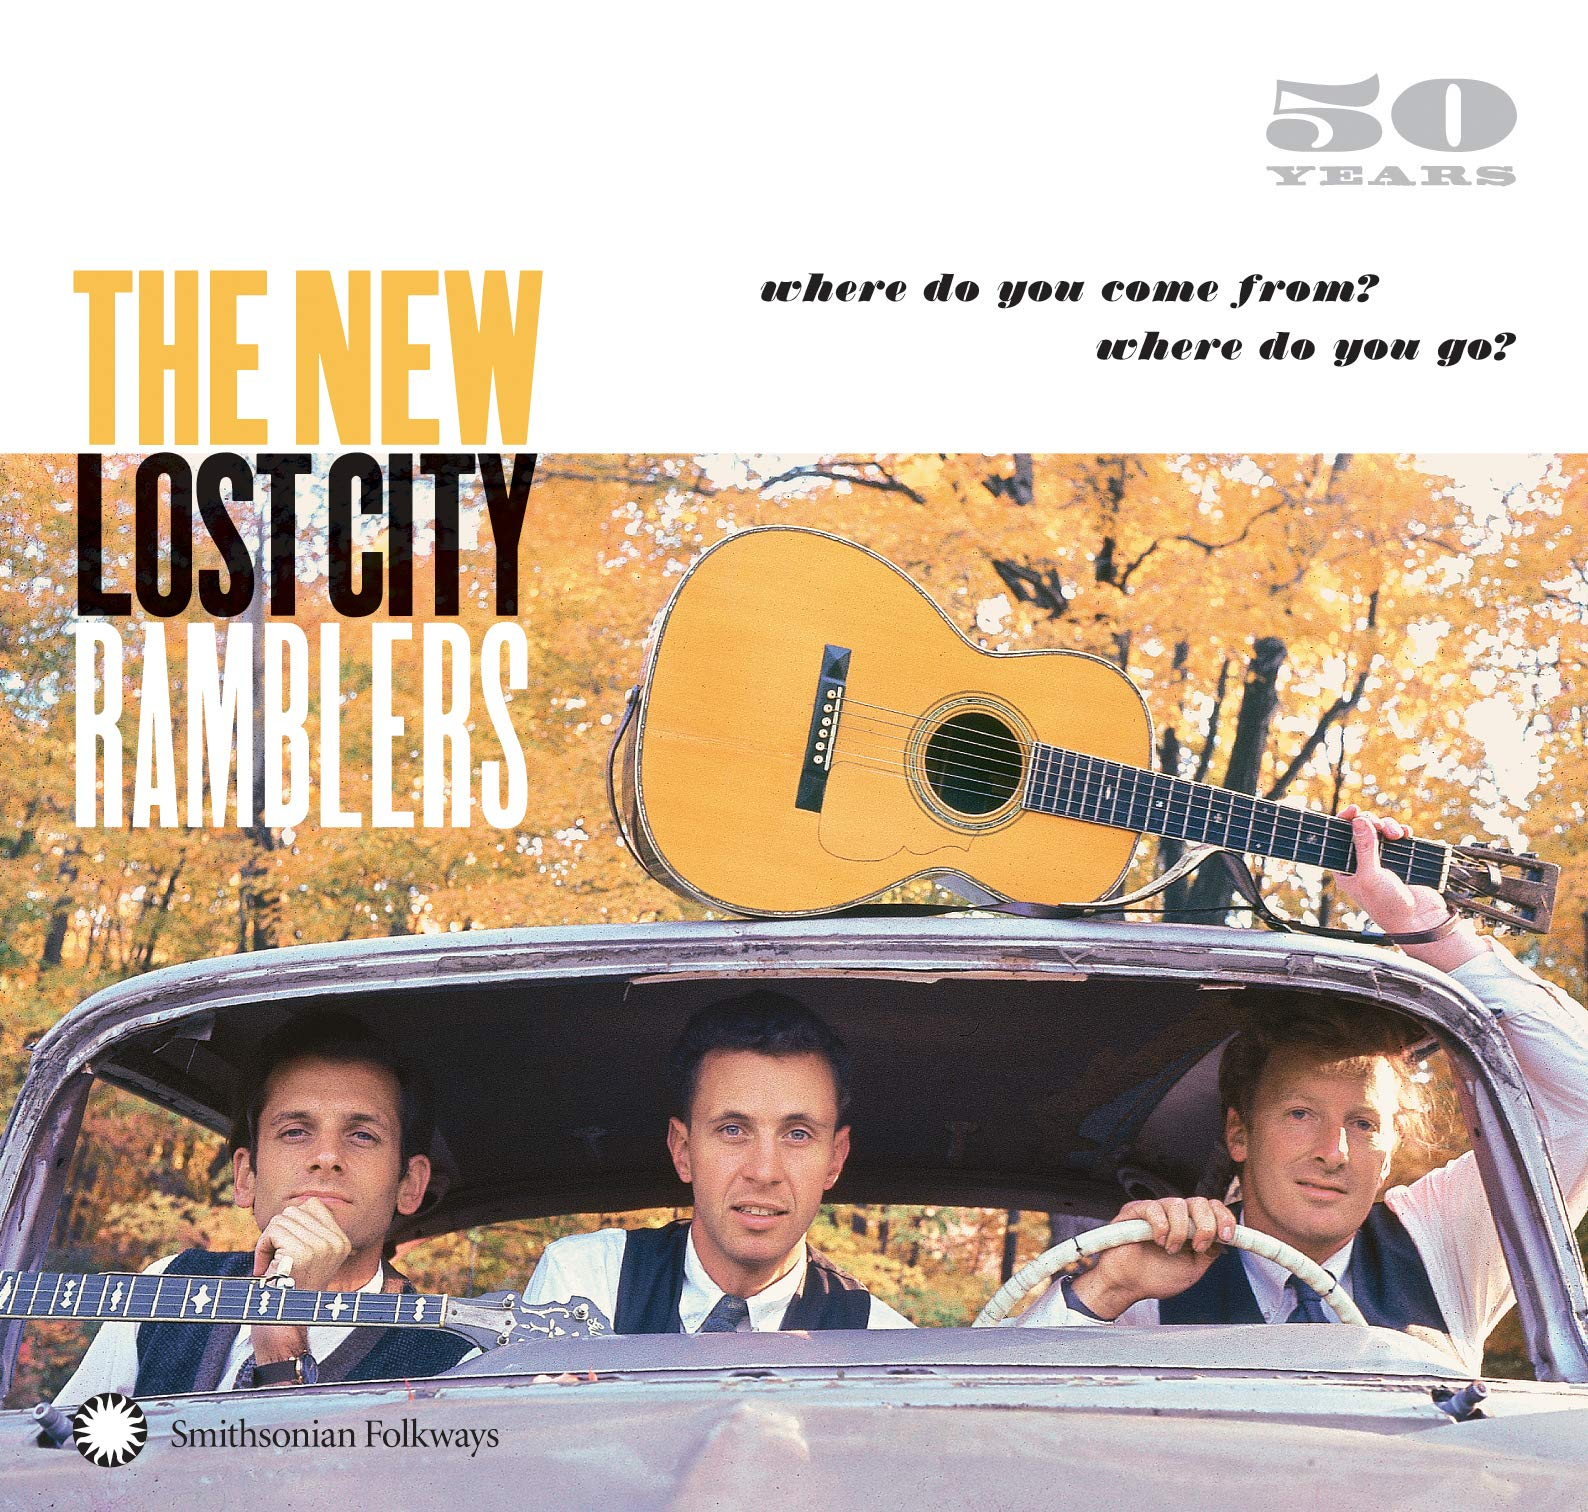 50 Years: Where Do You Come From? Where Do You Go? by Smithsonian Folkways